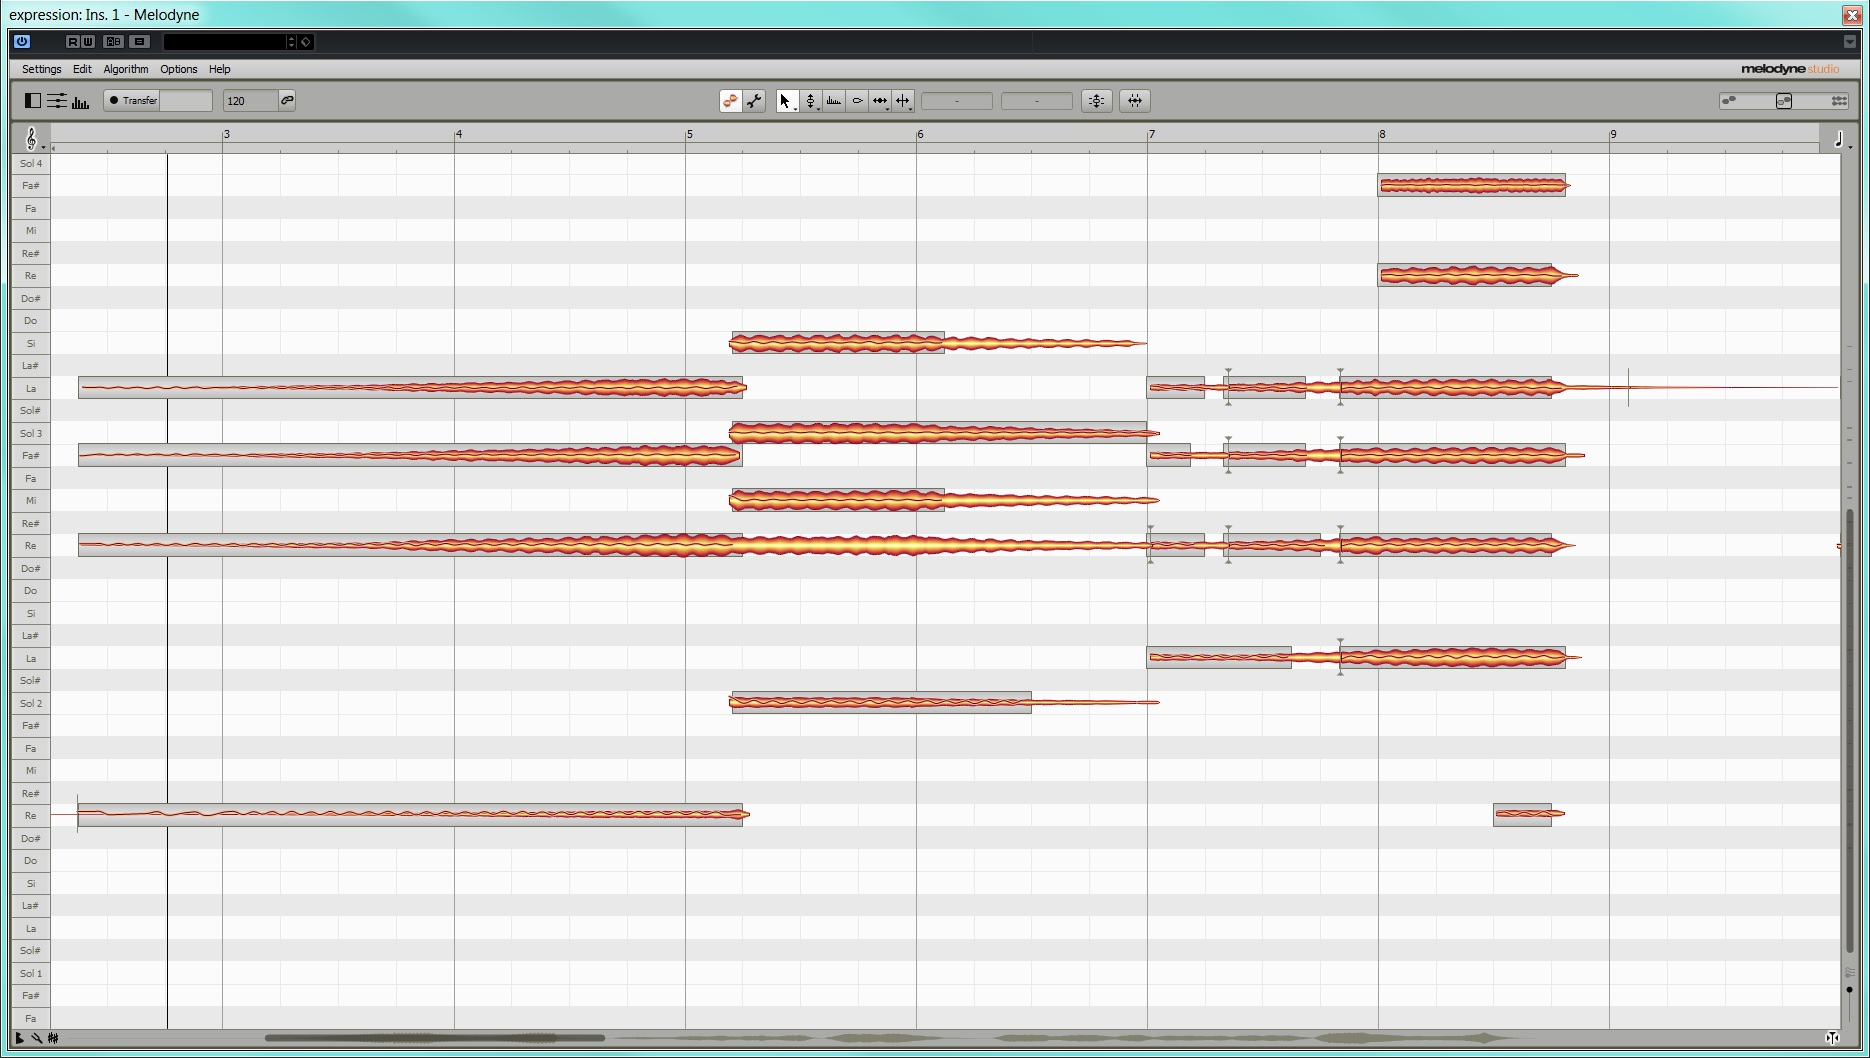 Come Convertire un file audio in midi e un file midi in audio